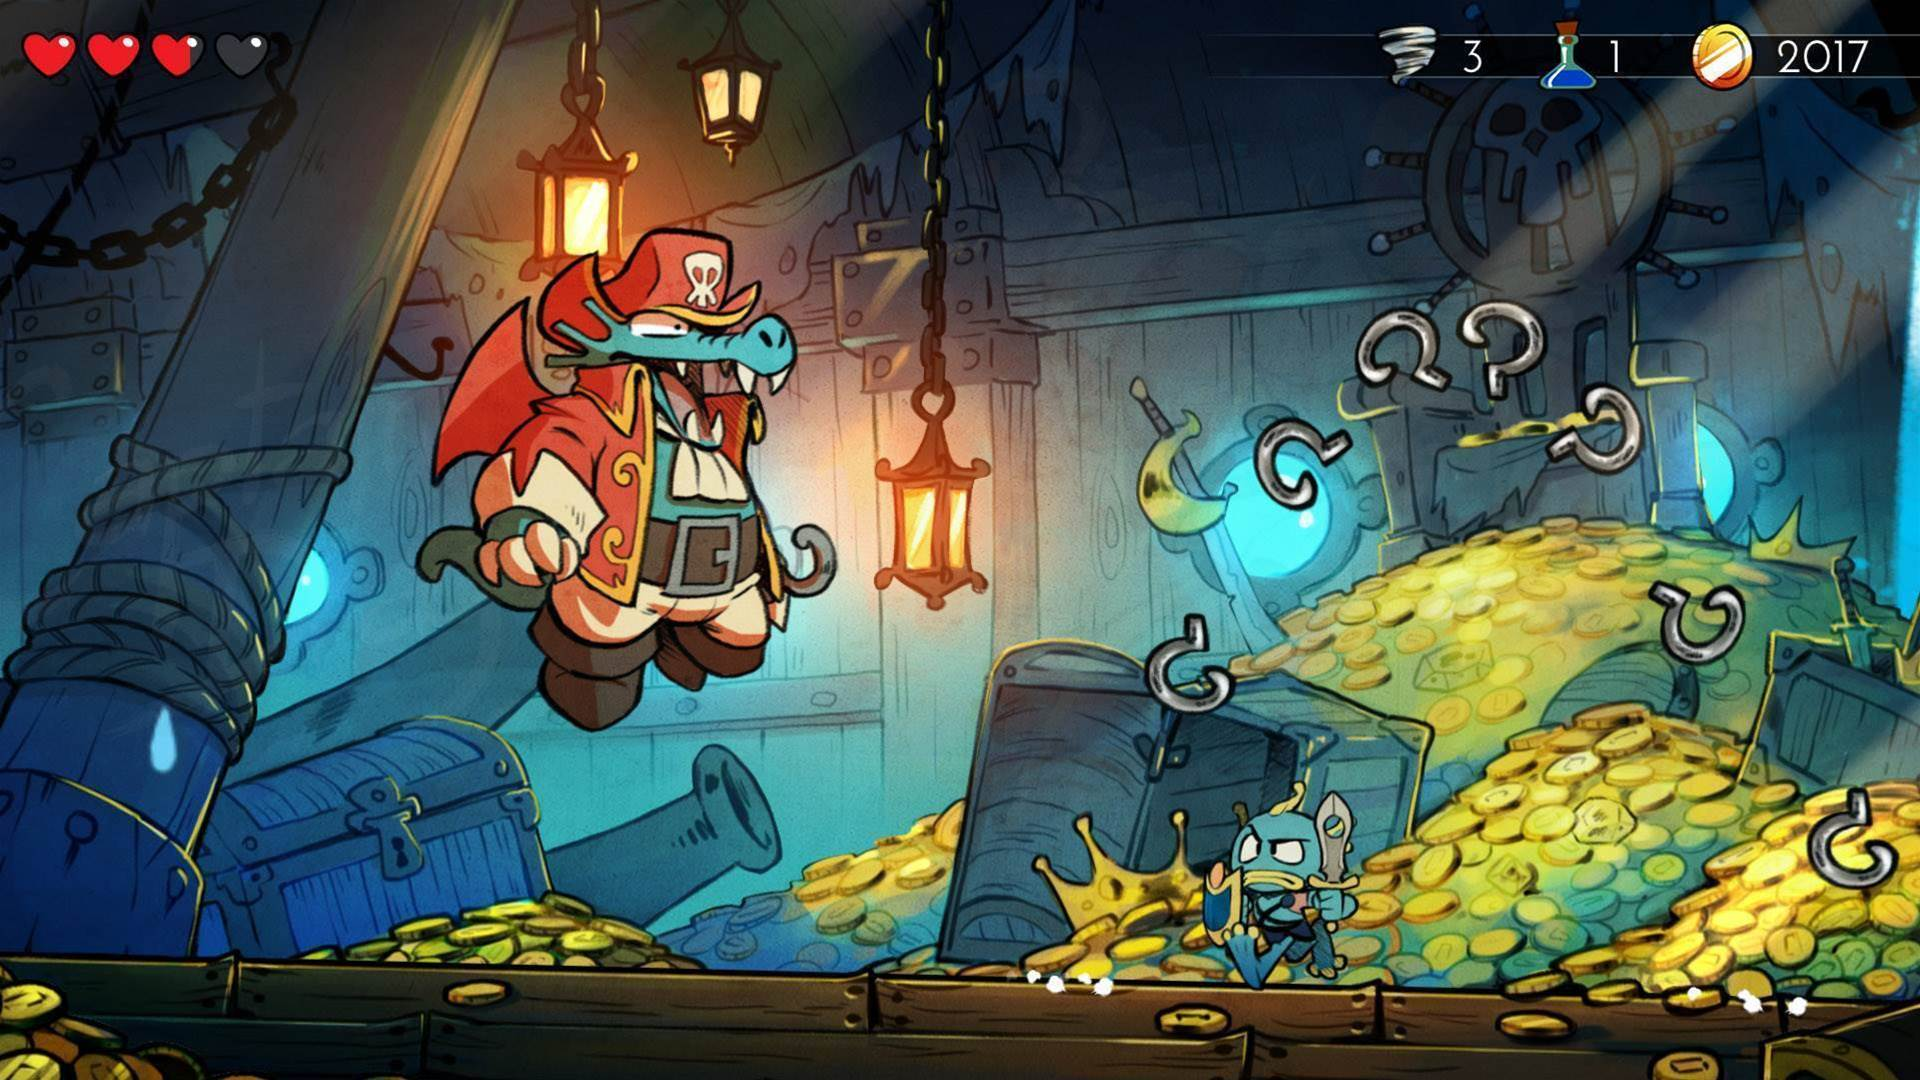 That Wonder Boy remake is getting a physical release